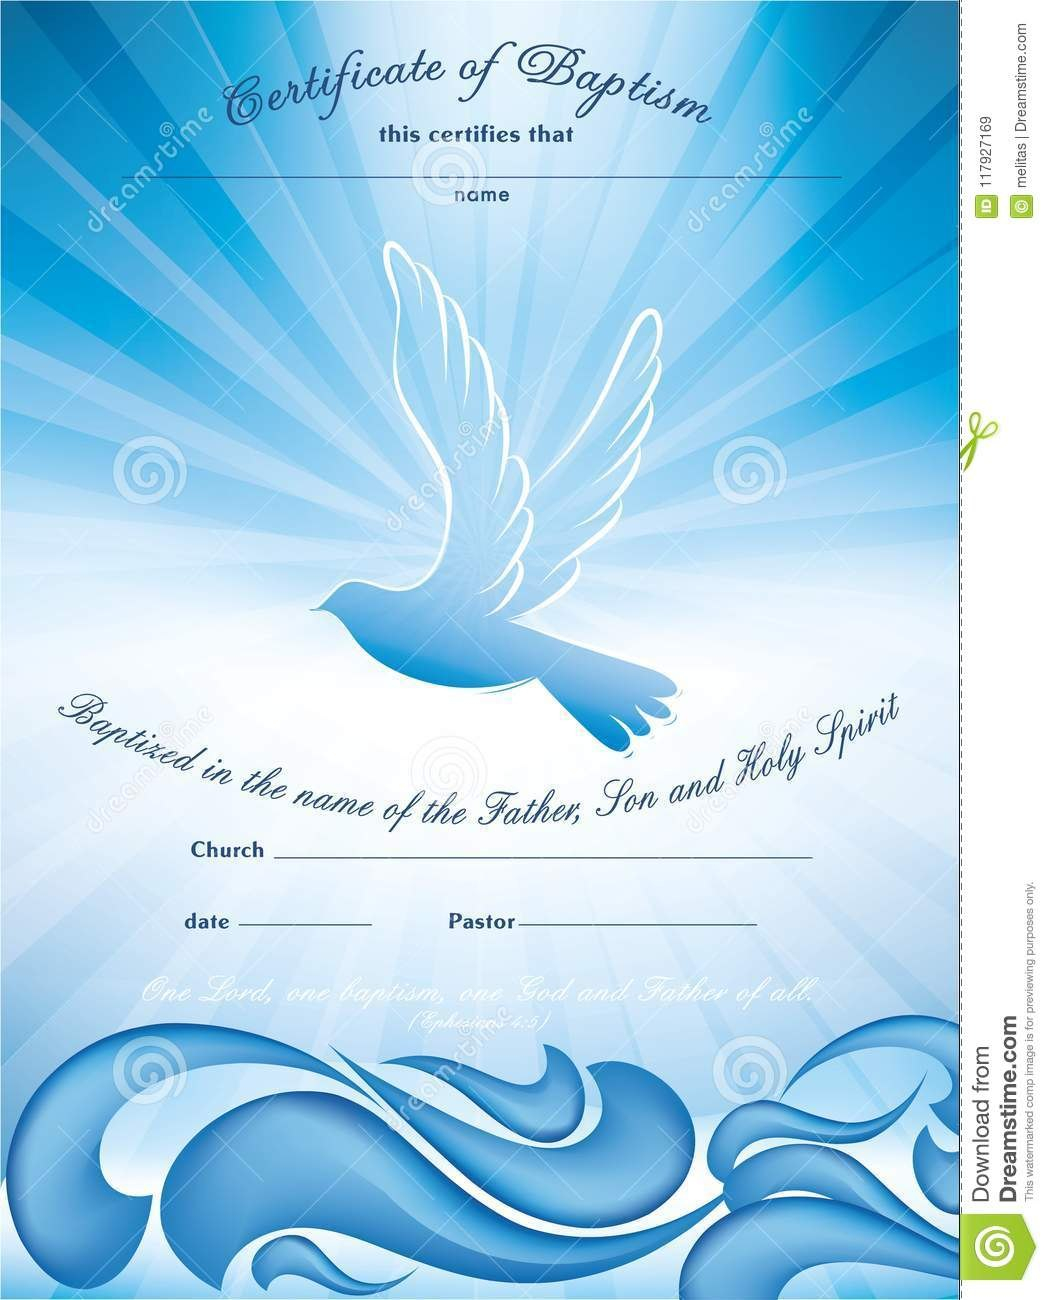 Certificate Baptism Template With Waves Of Water And Dove Multiple Intended For Christian Baptism Certificate Template